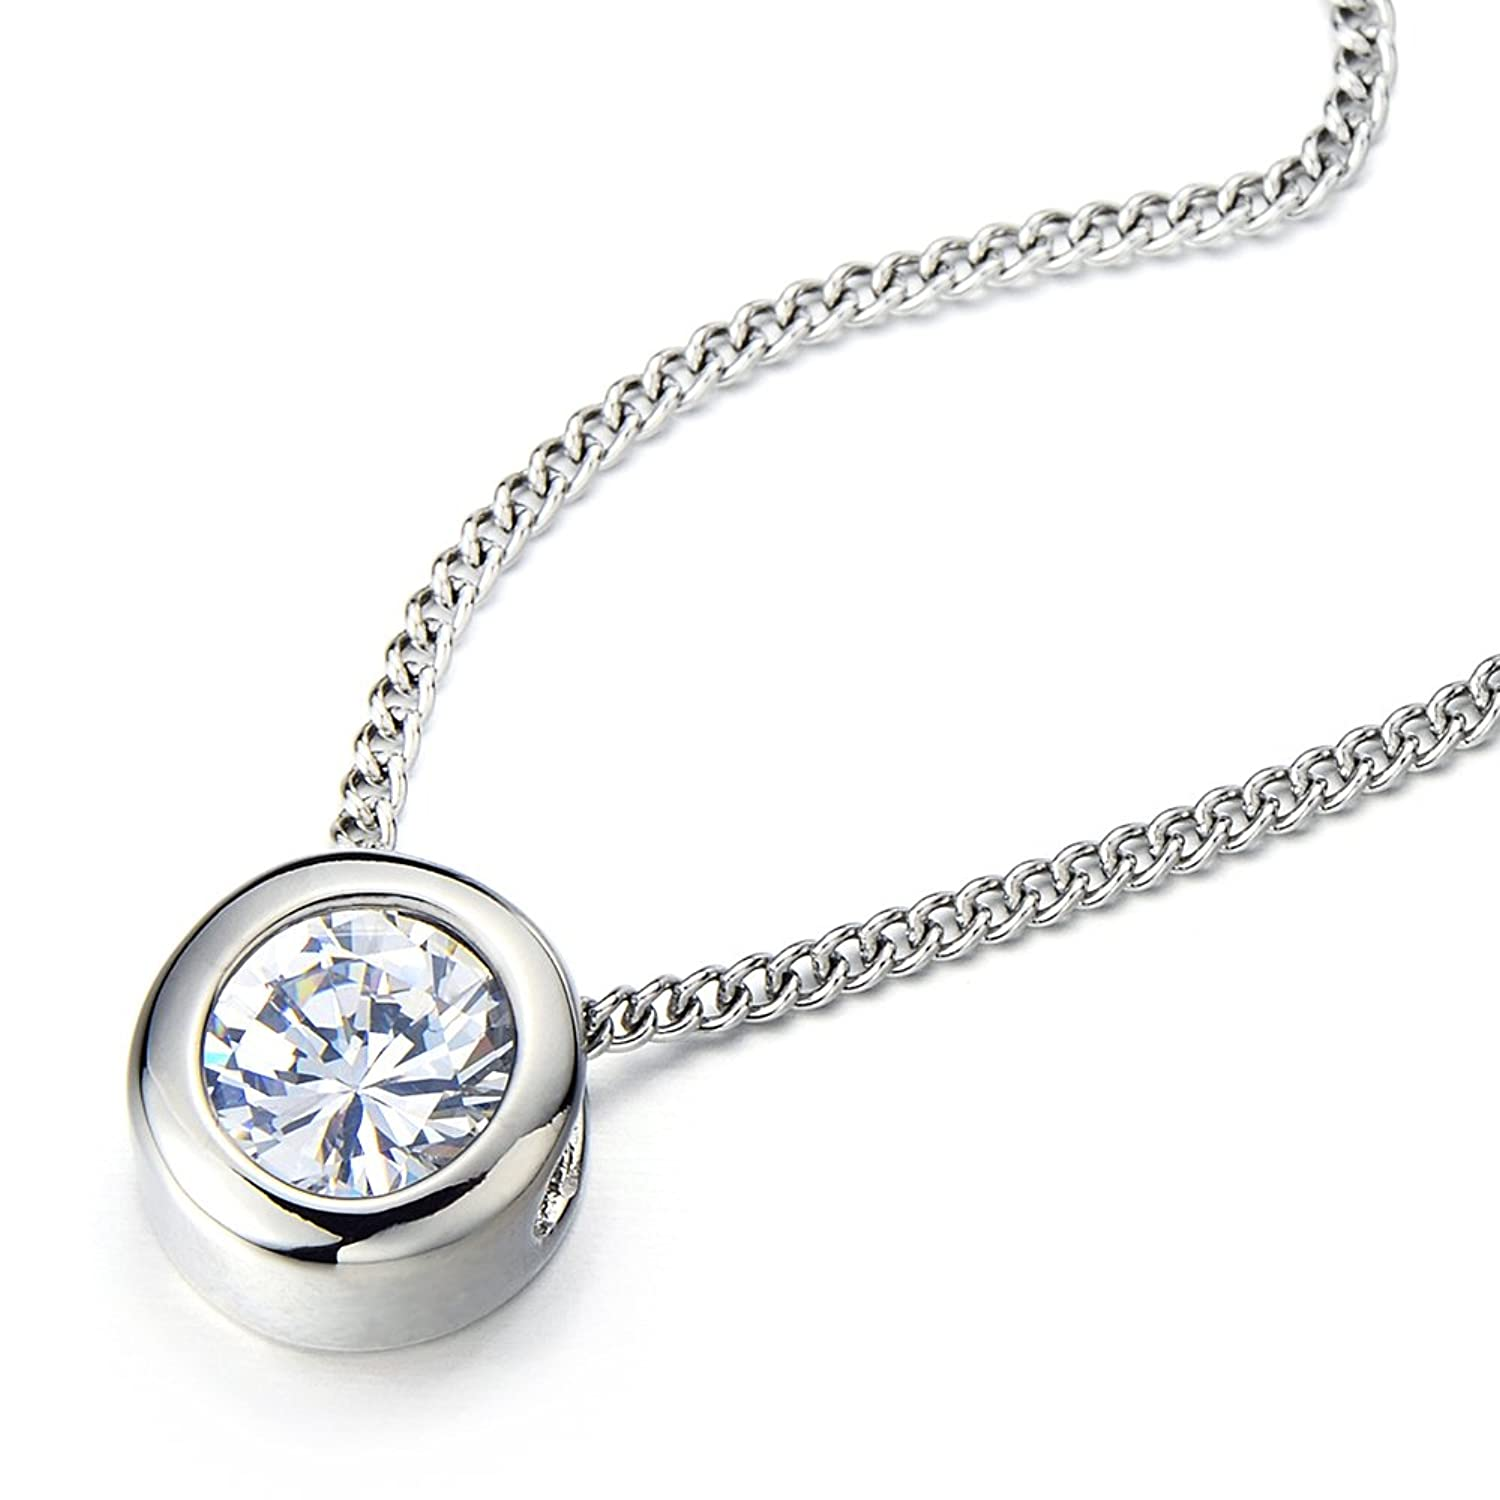 davies pendant bezel rolo chain in set diamond white solitaire a necklace product edwards gold on